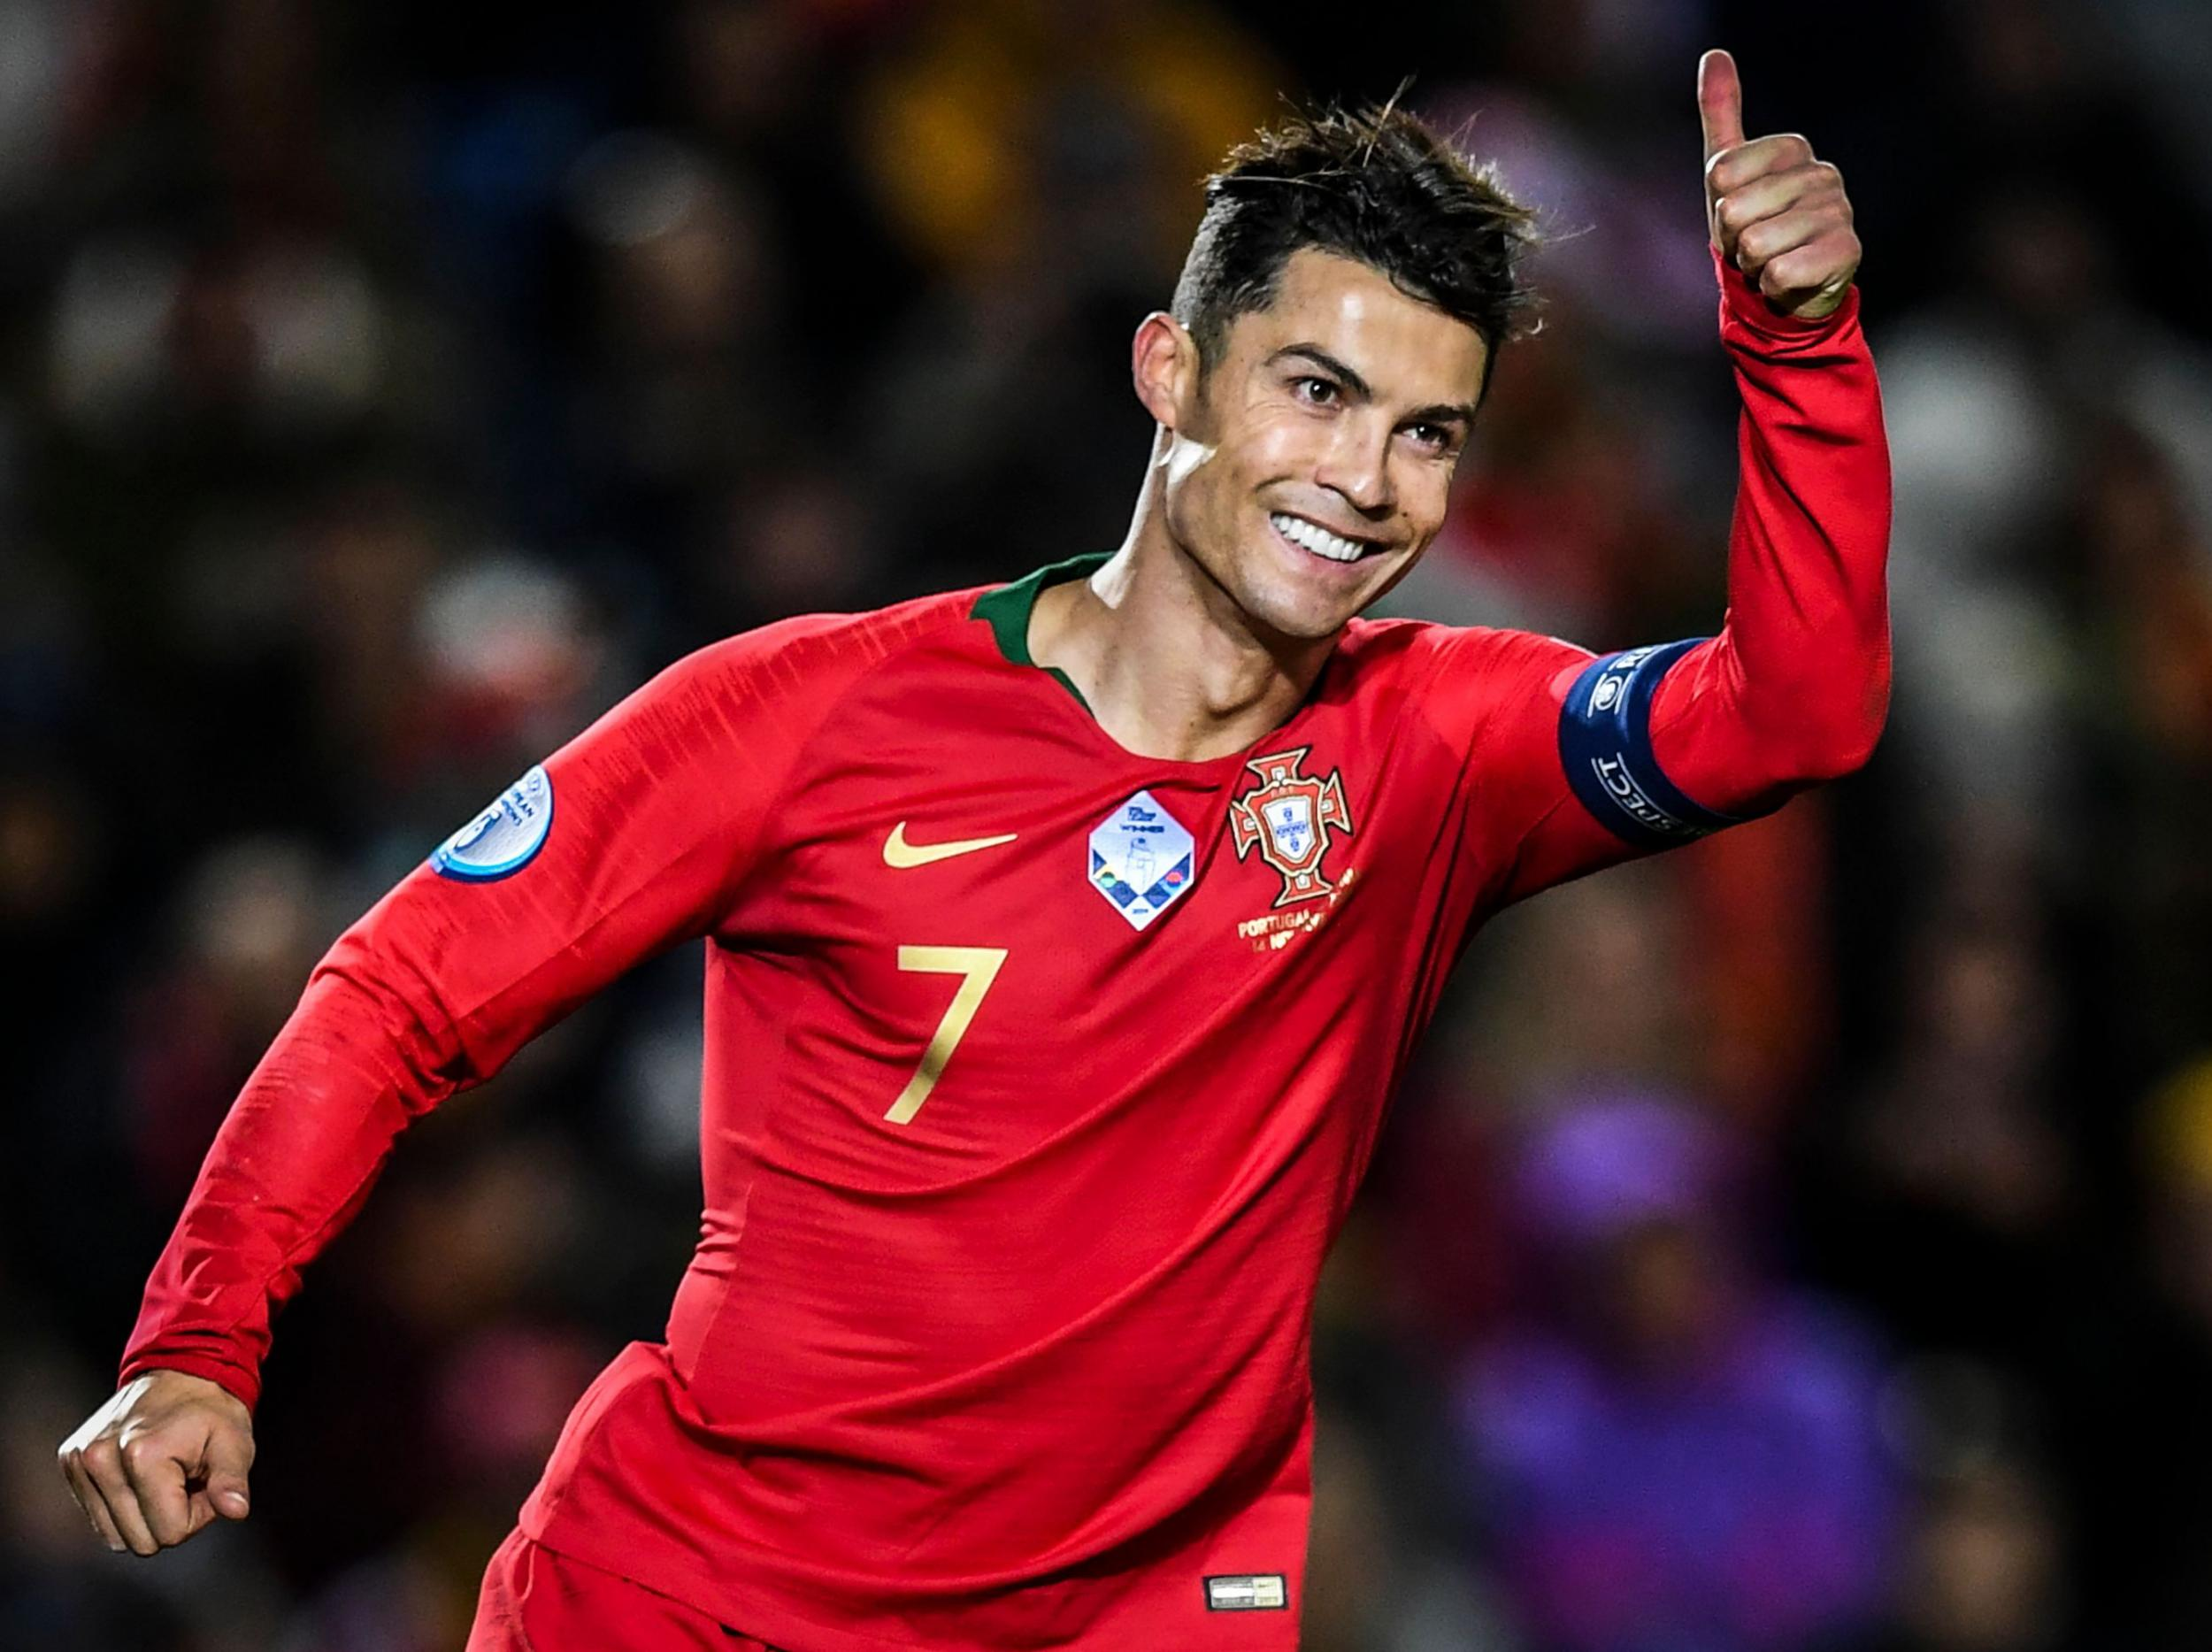 Cristiano Ronaldo scores another hat-trick for Portugal as Mario Rui heralds him as 'best in world'